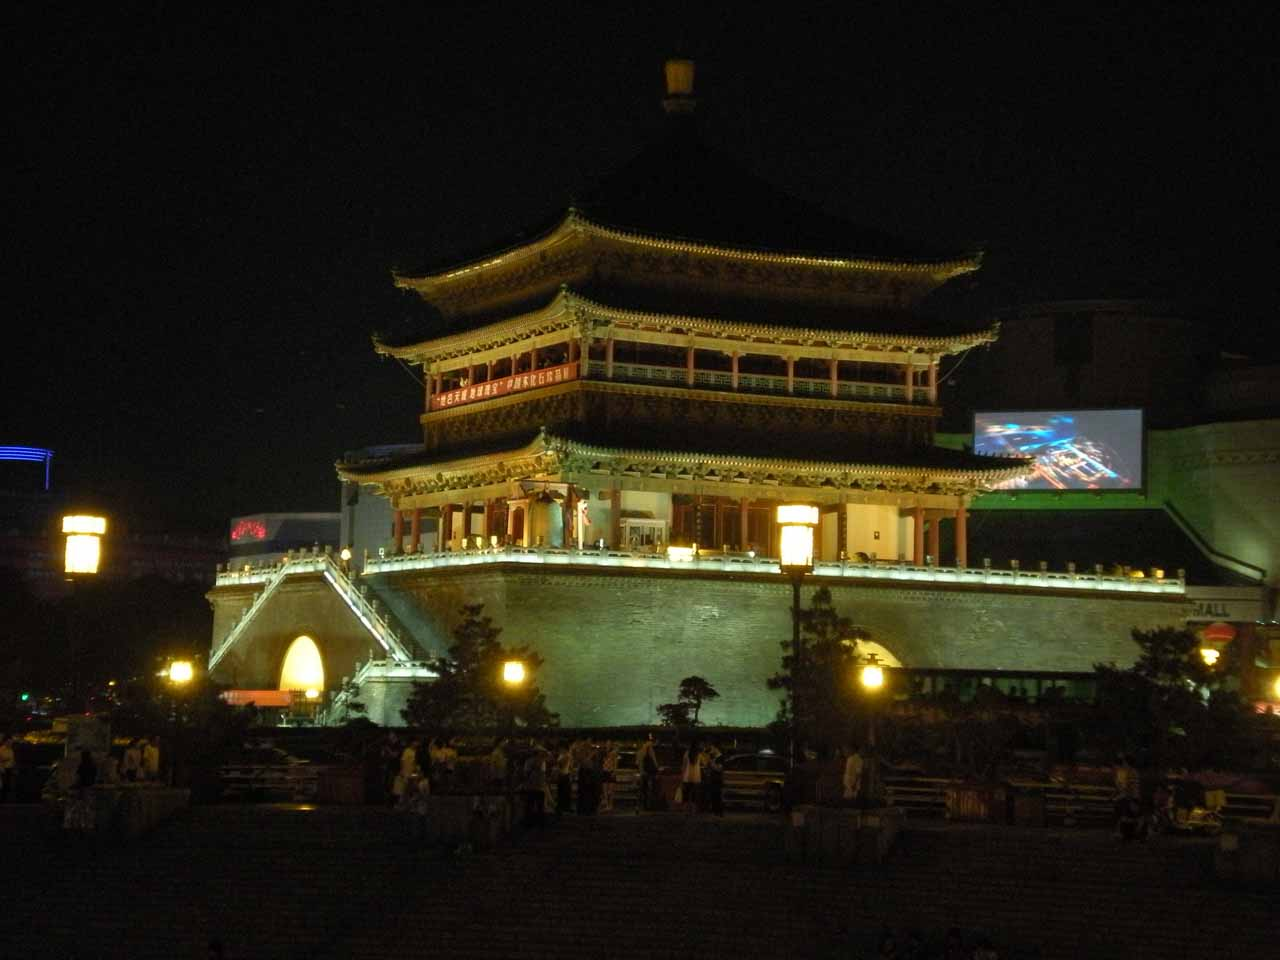 Another night on the town in Xi'an